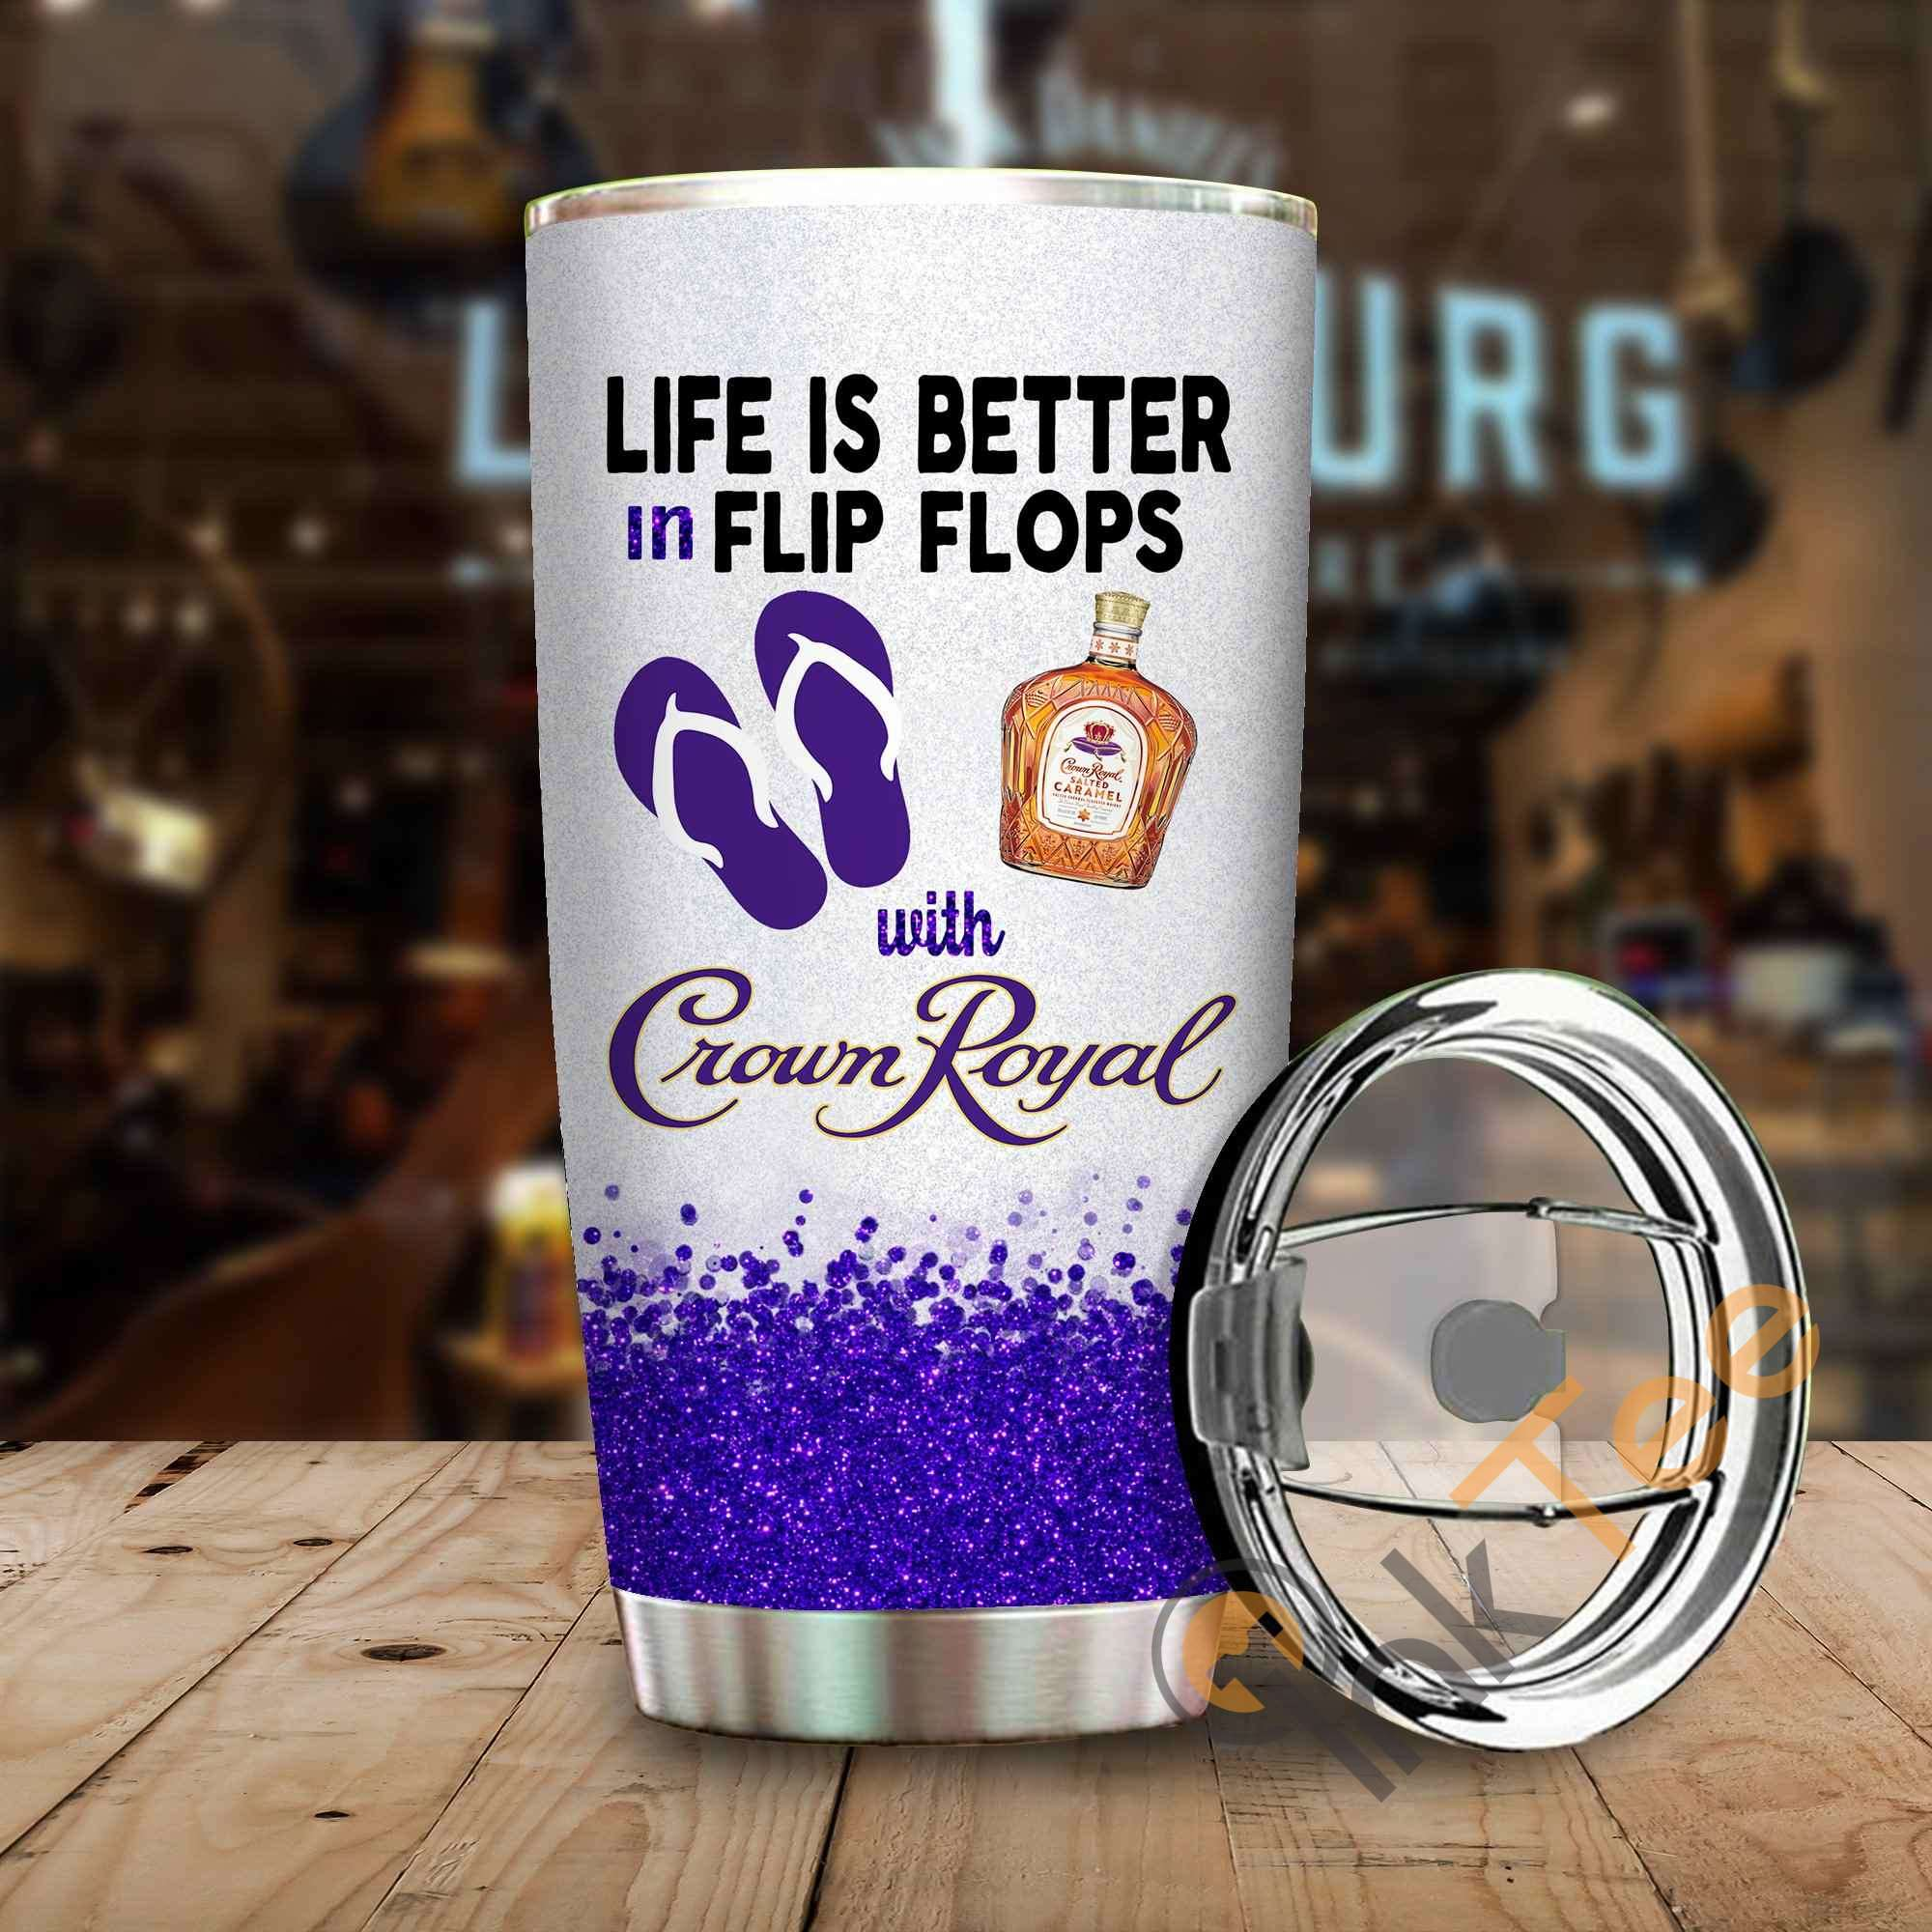 Life Is Better In Flip Flops With Crown Royal Amazon Best Seller Sku 4050 Stainless Steel Tumbler